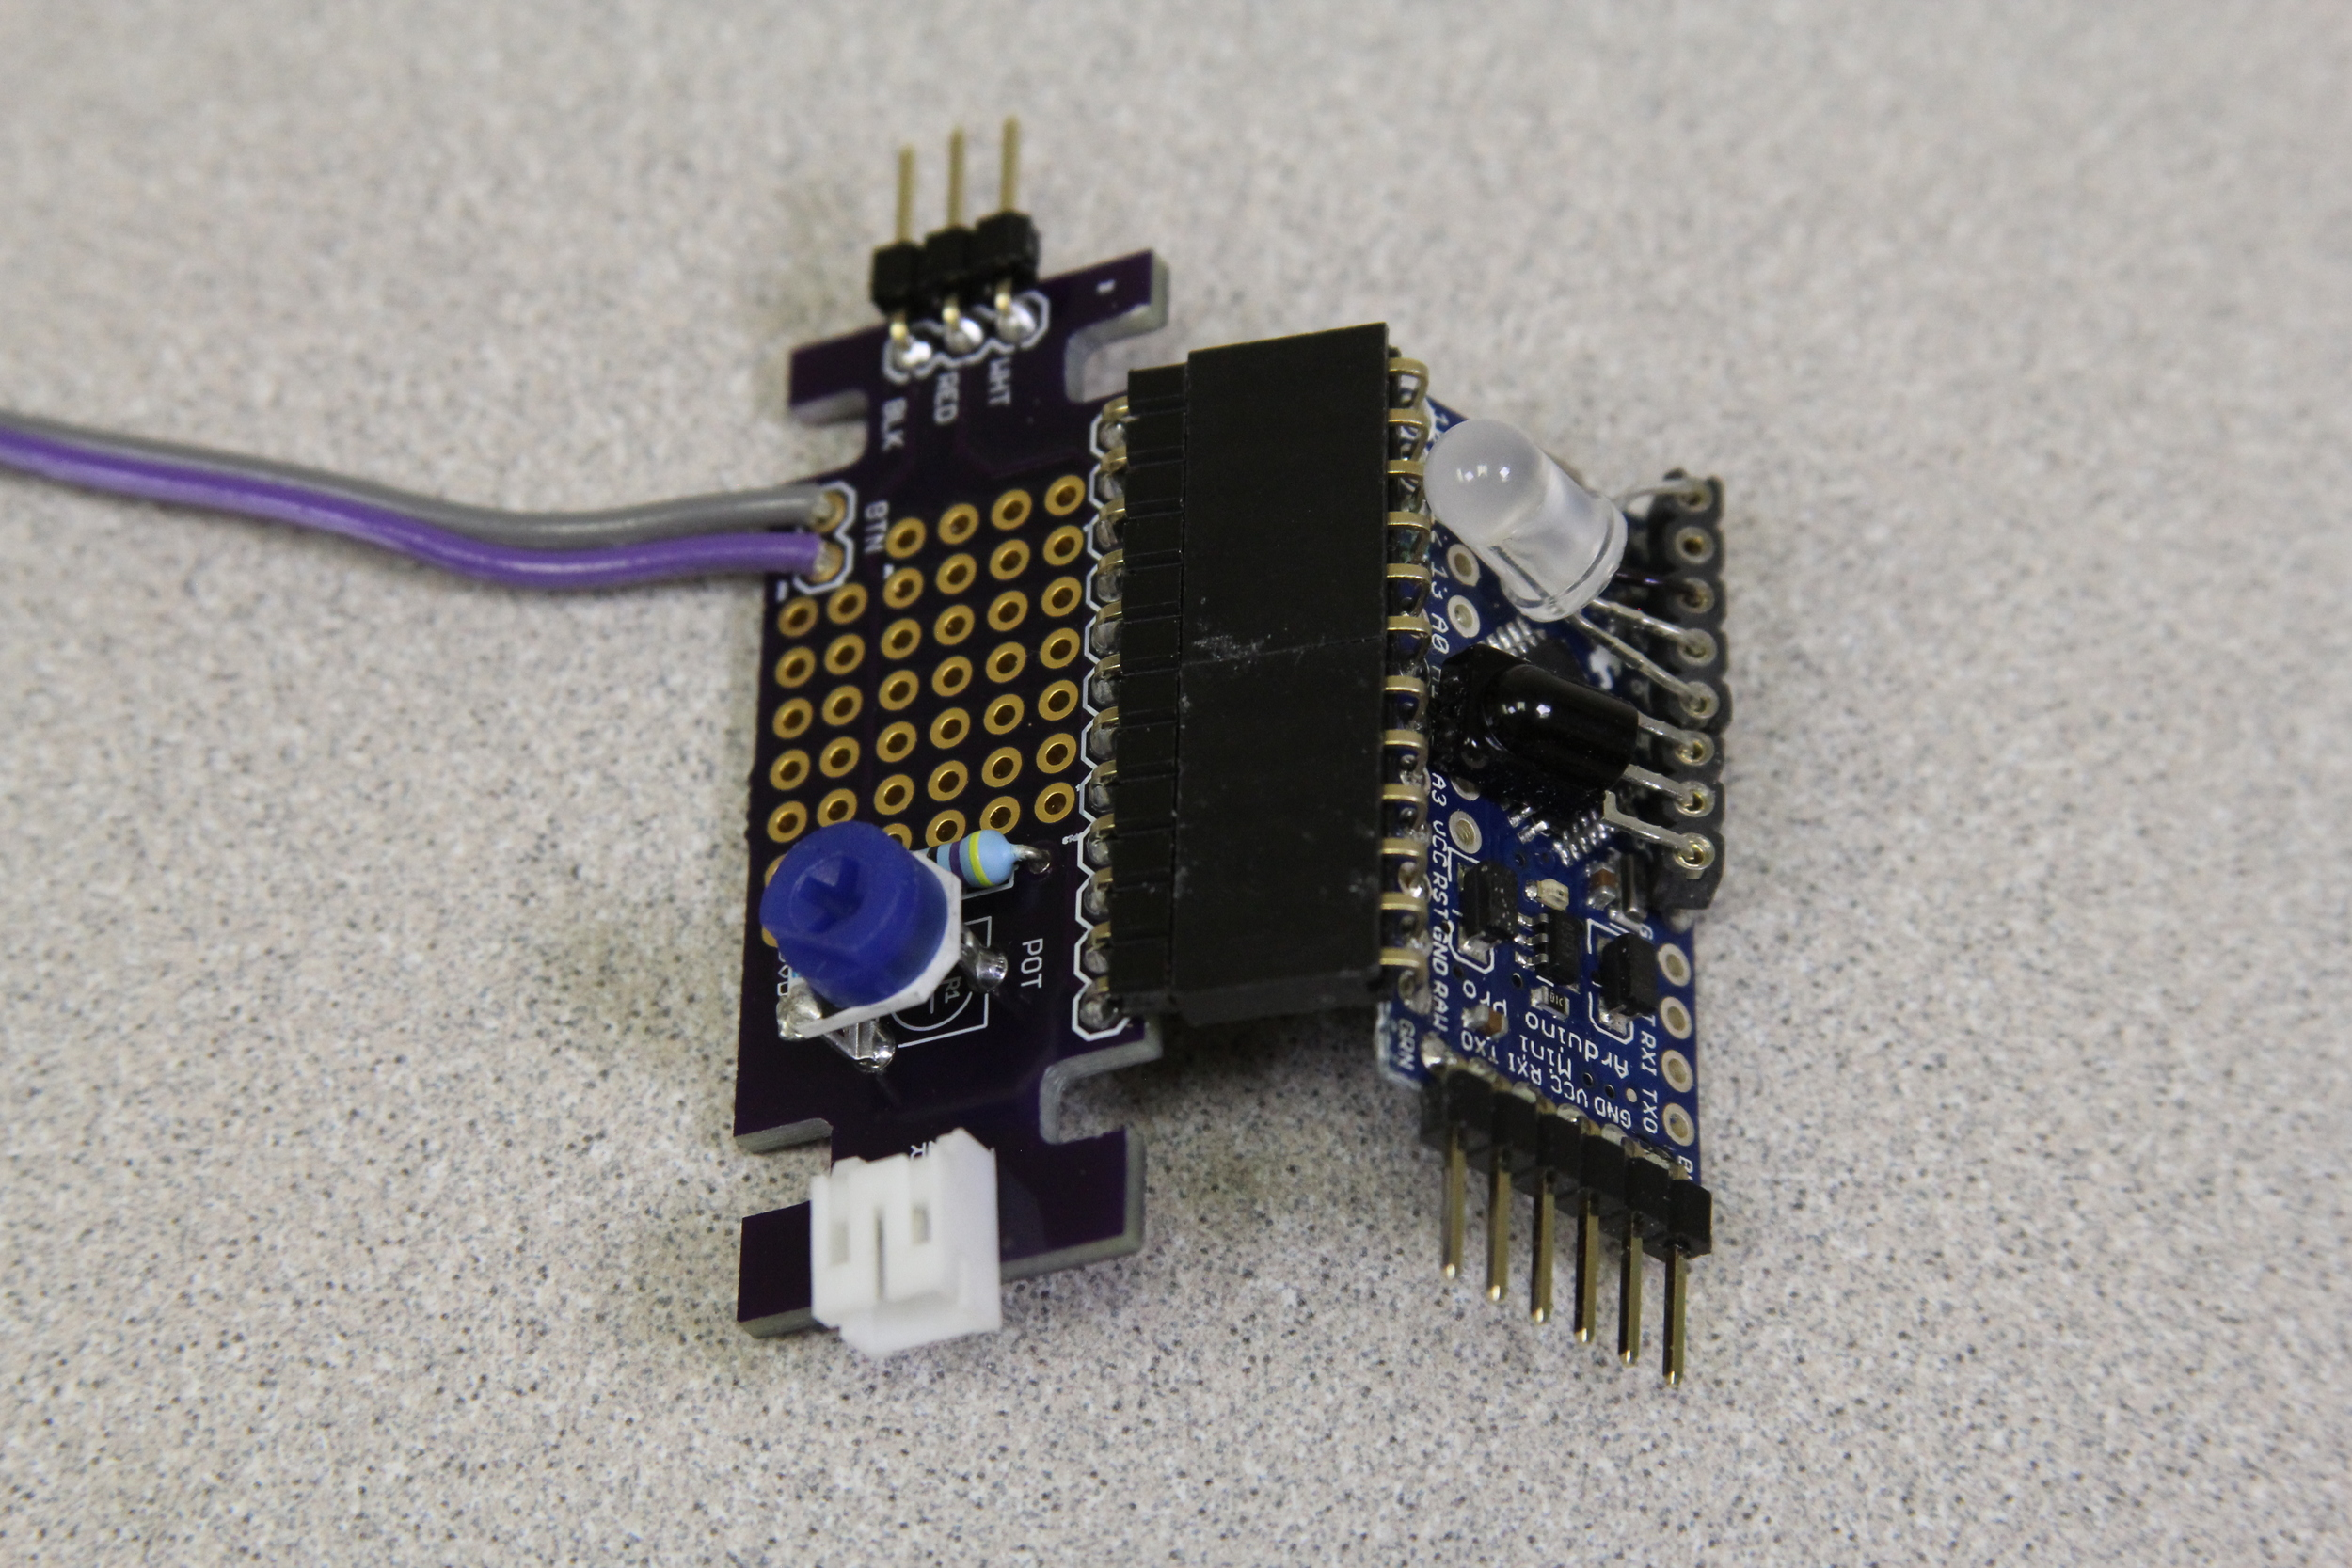 SeaGlide's Control Electronics - Printed Circuit Board (left) and an Arduino Pro Mini Microcontroller (right)